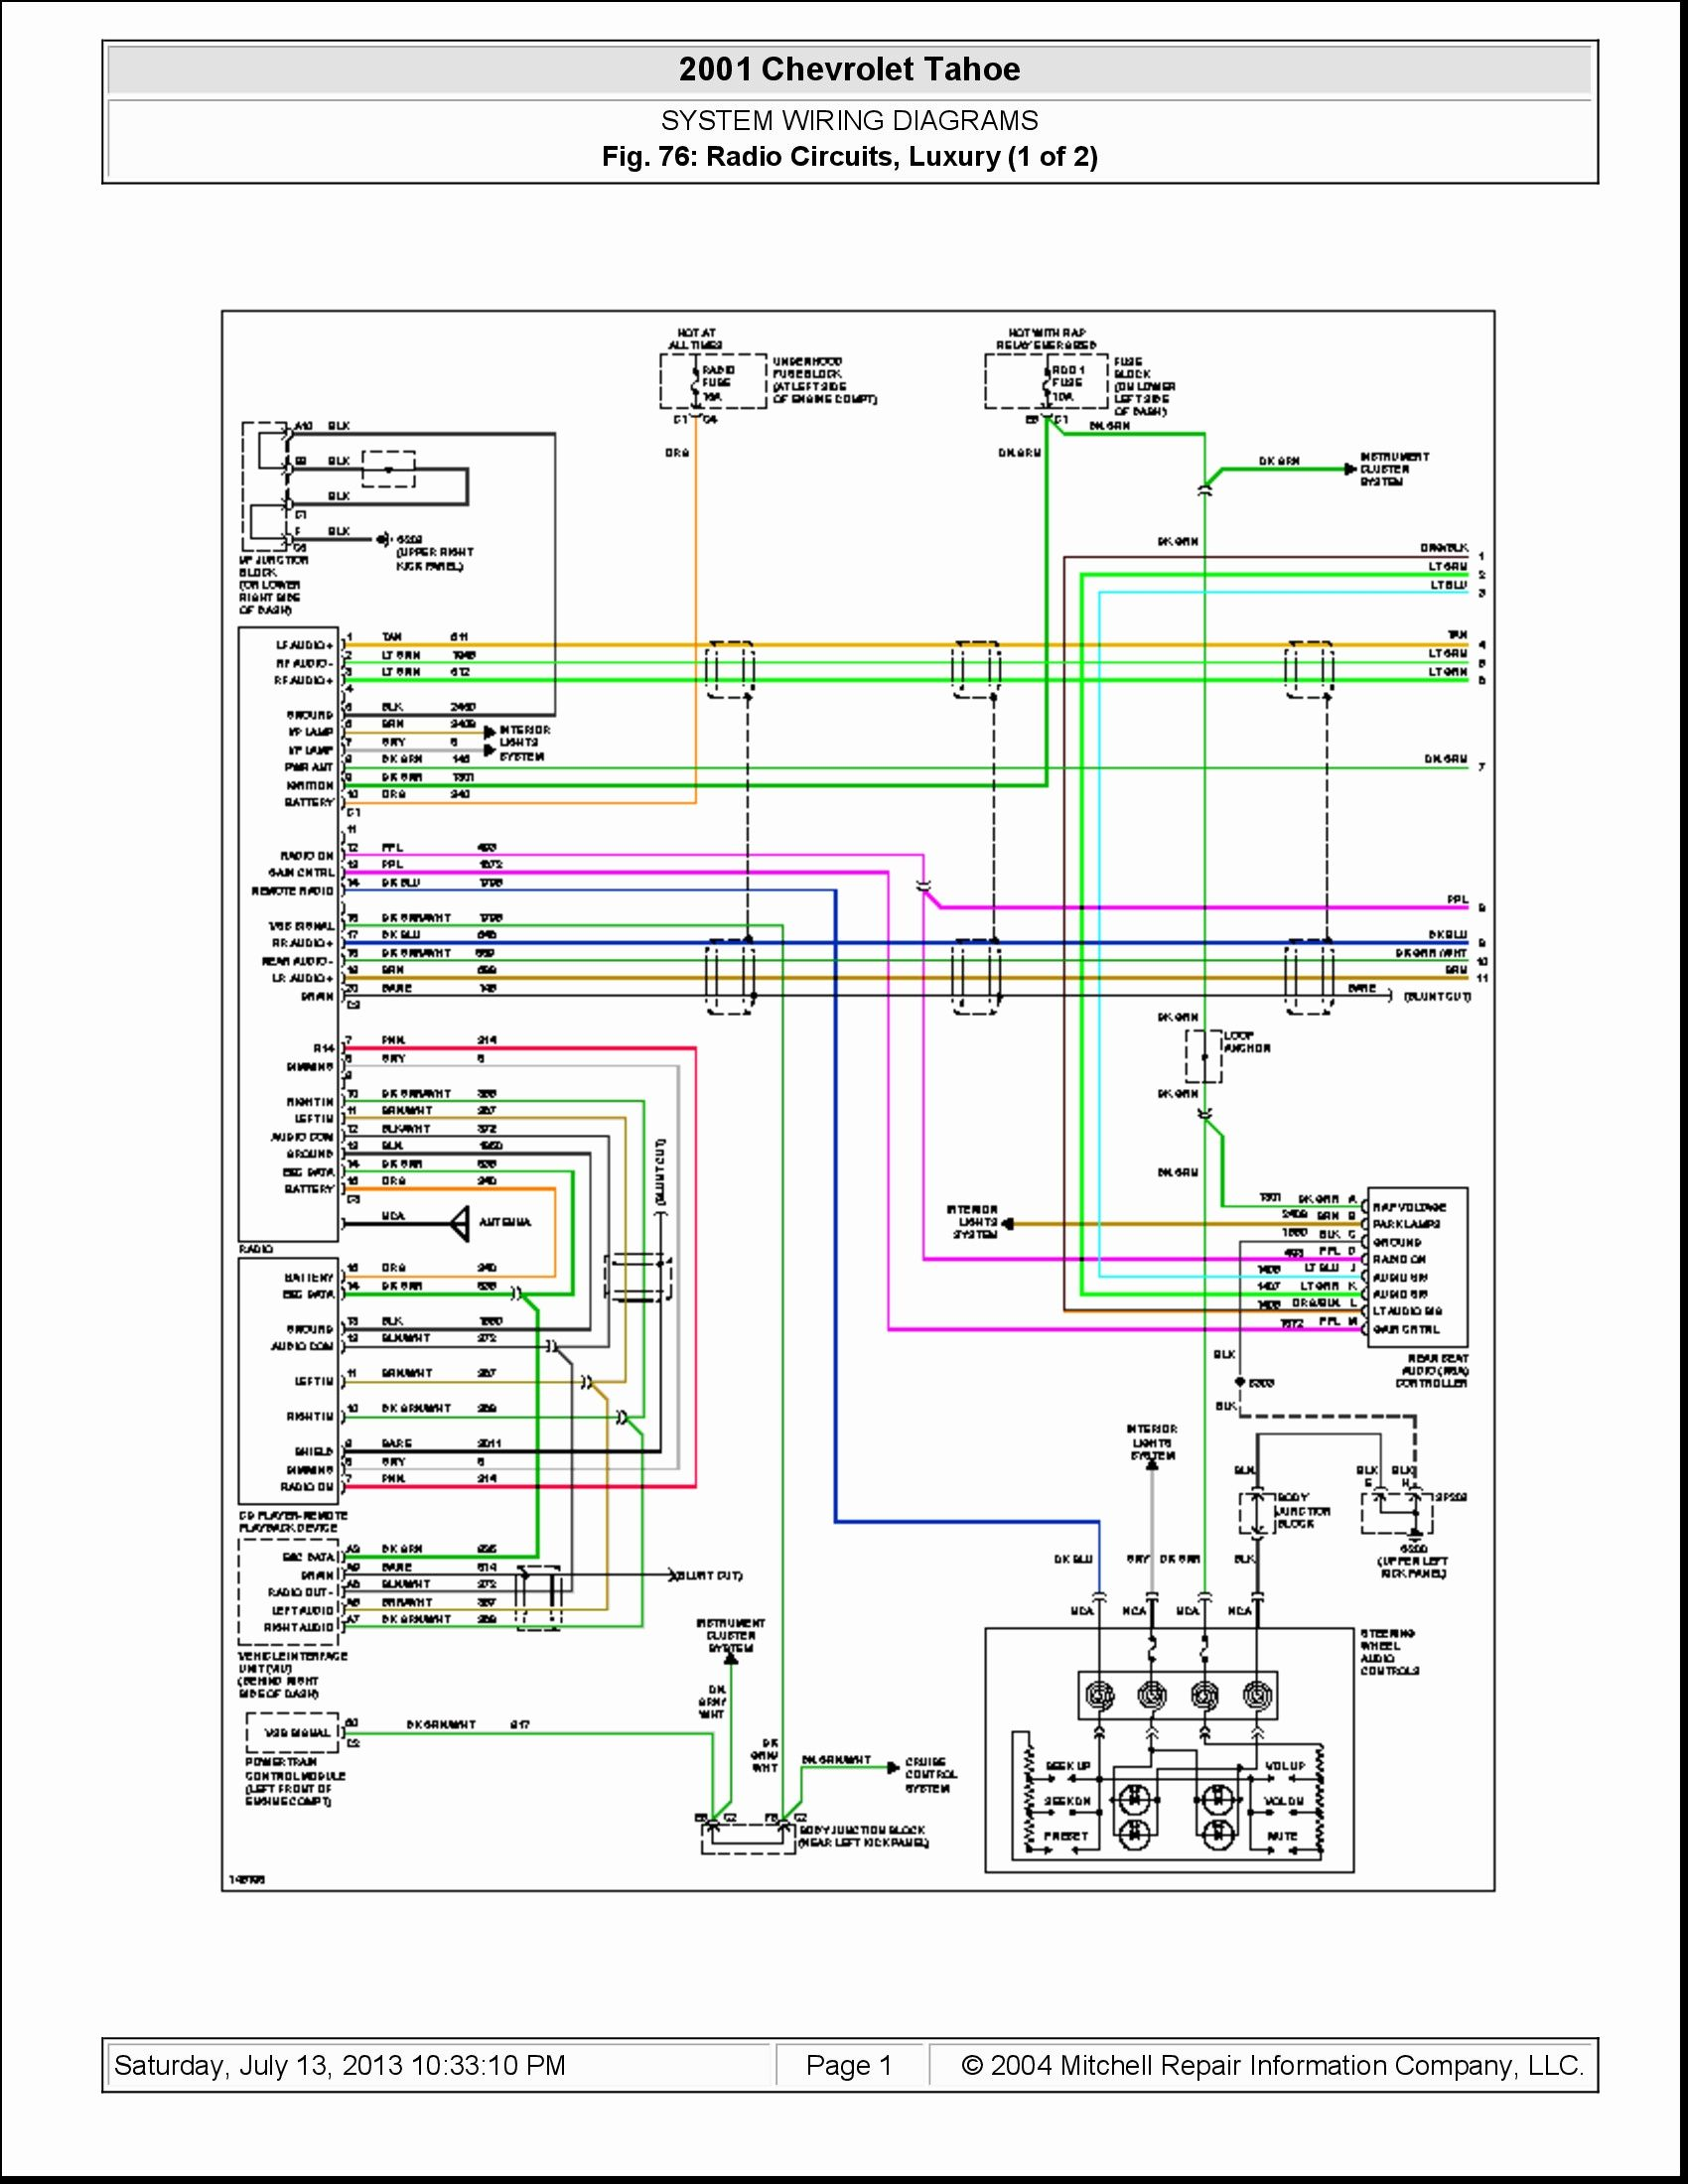 2005 Chevy Silverado Tail Light Wiring Diagram Wiring Diagram Method Method Lasuiteclub It